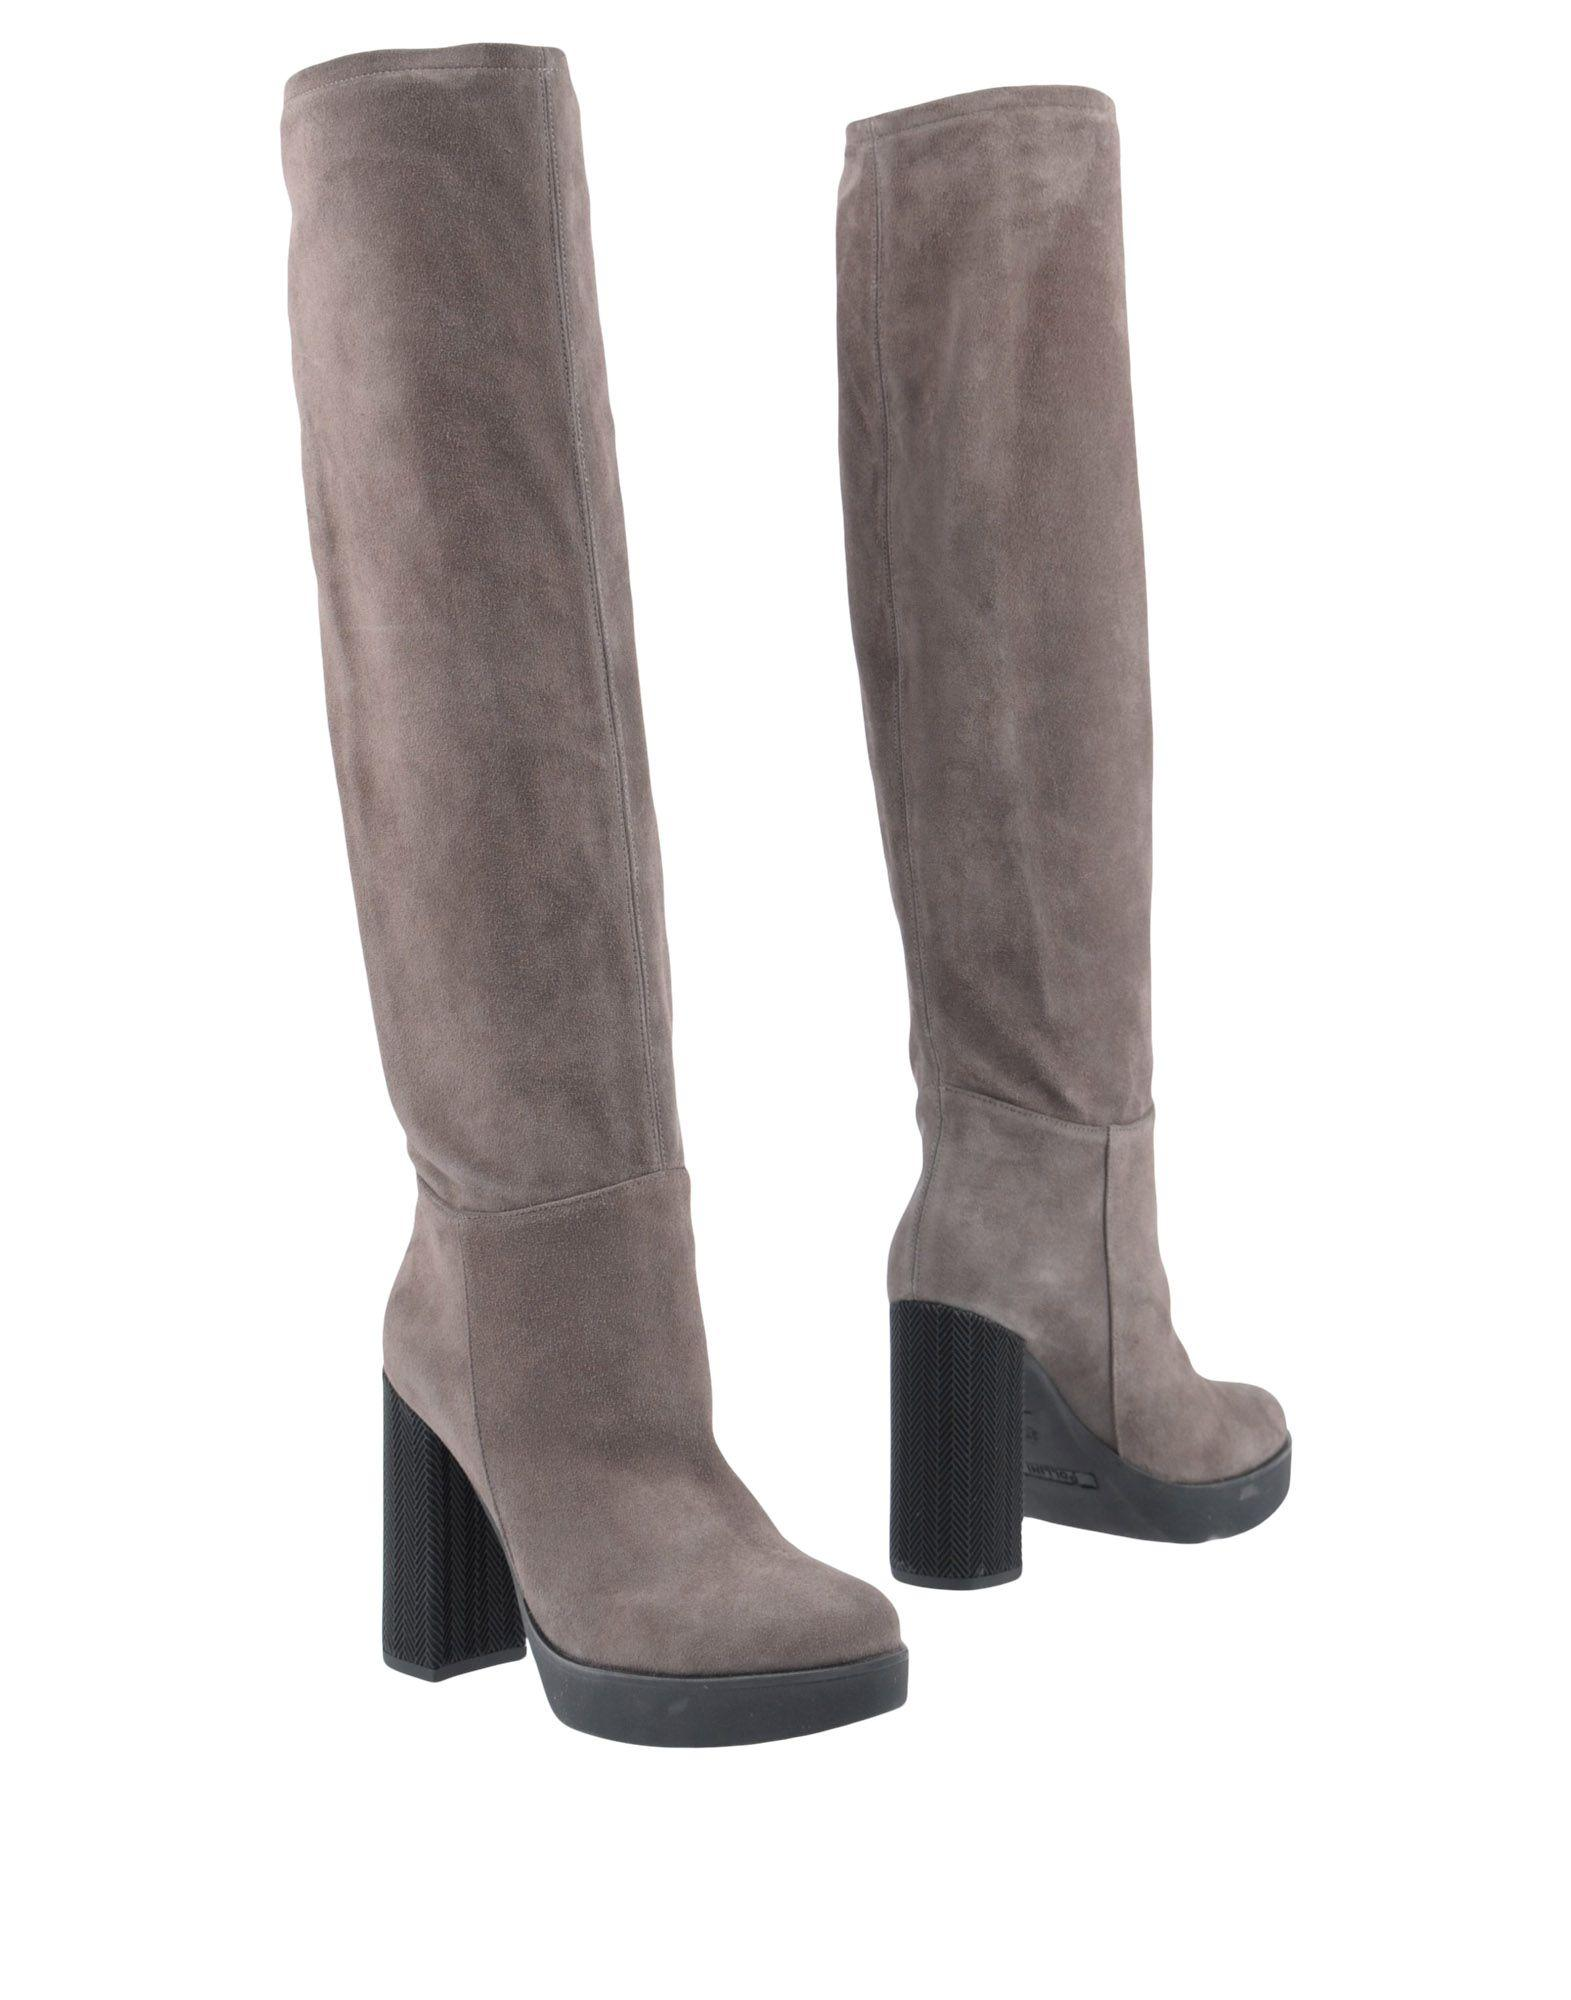 Pollini Boots In Grey